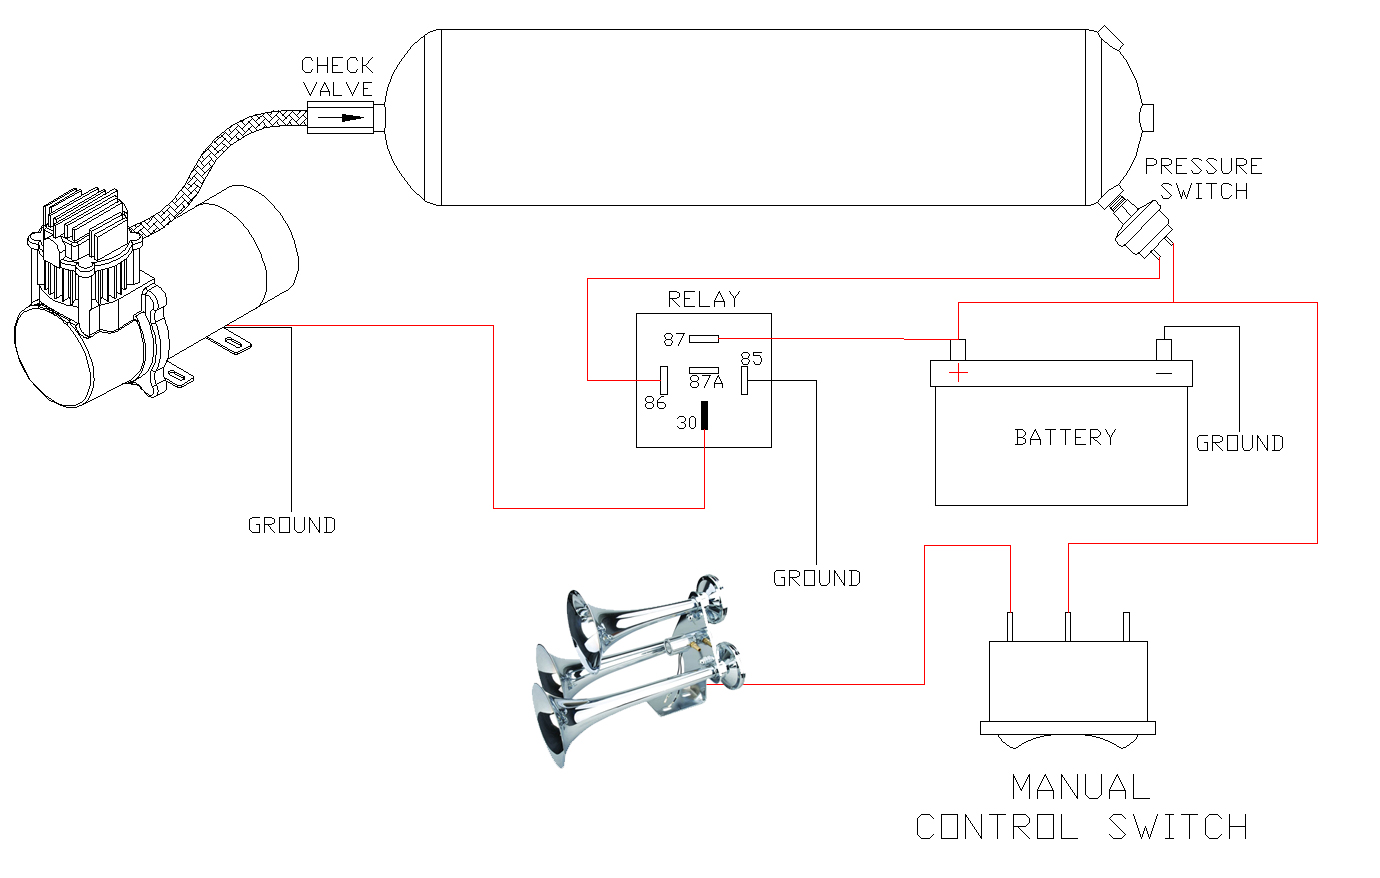 Wiring Diagram For Harley Air Ride Train Horns Quality Train Air Horn Kits For Your Car Or